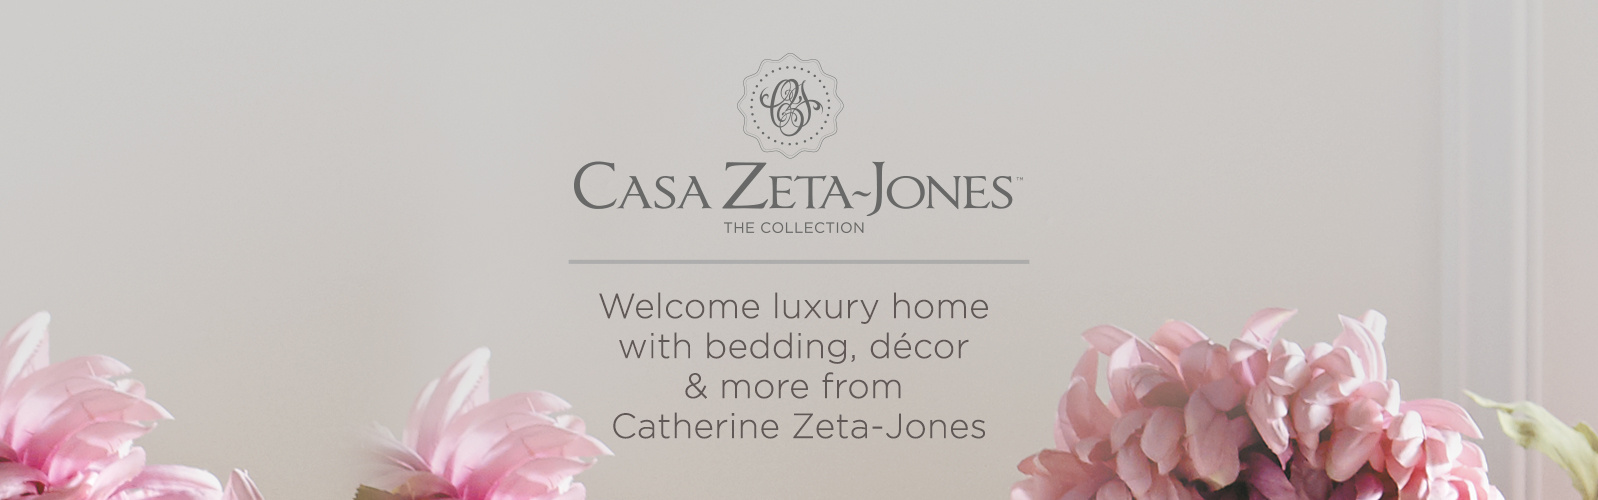 Casa Zeta-Jones. Welcome luxury home with bedding, décor & more from Catherine Zeta-Jones